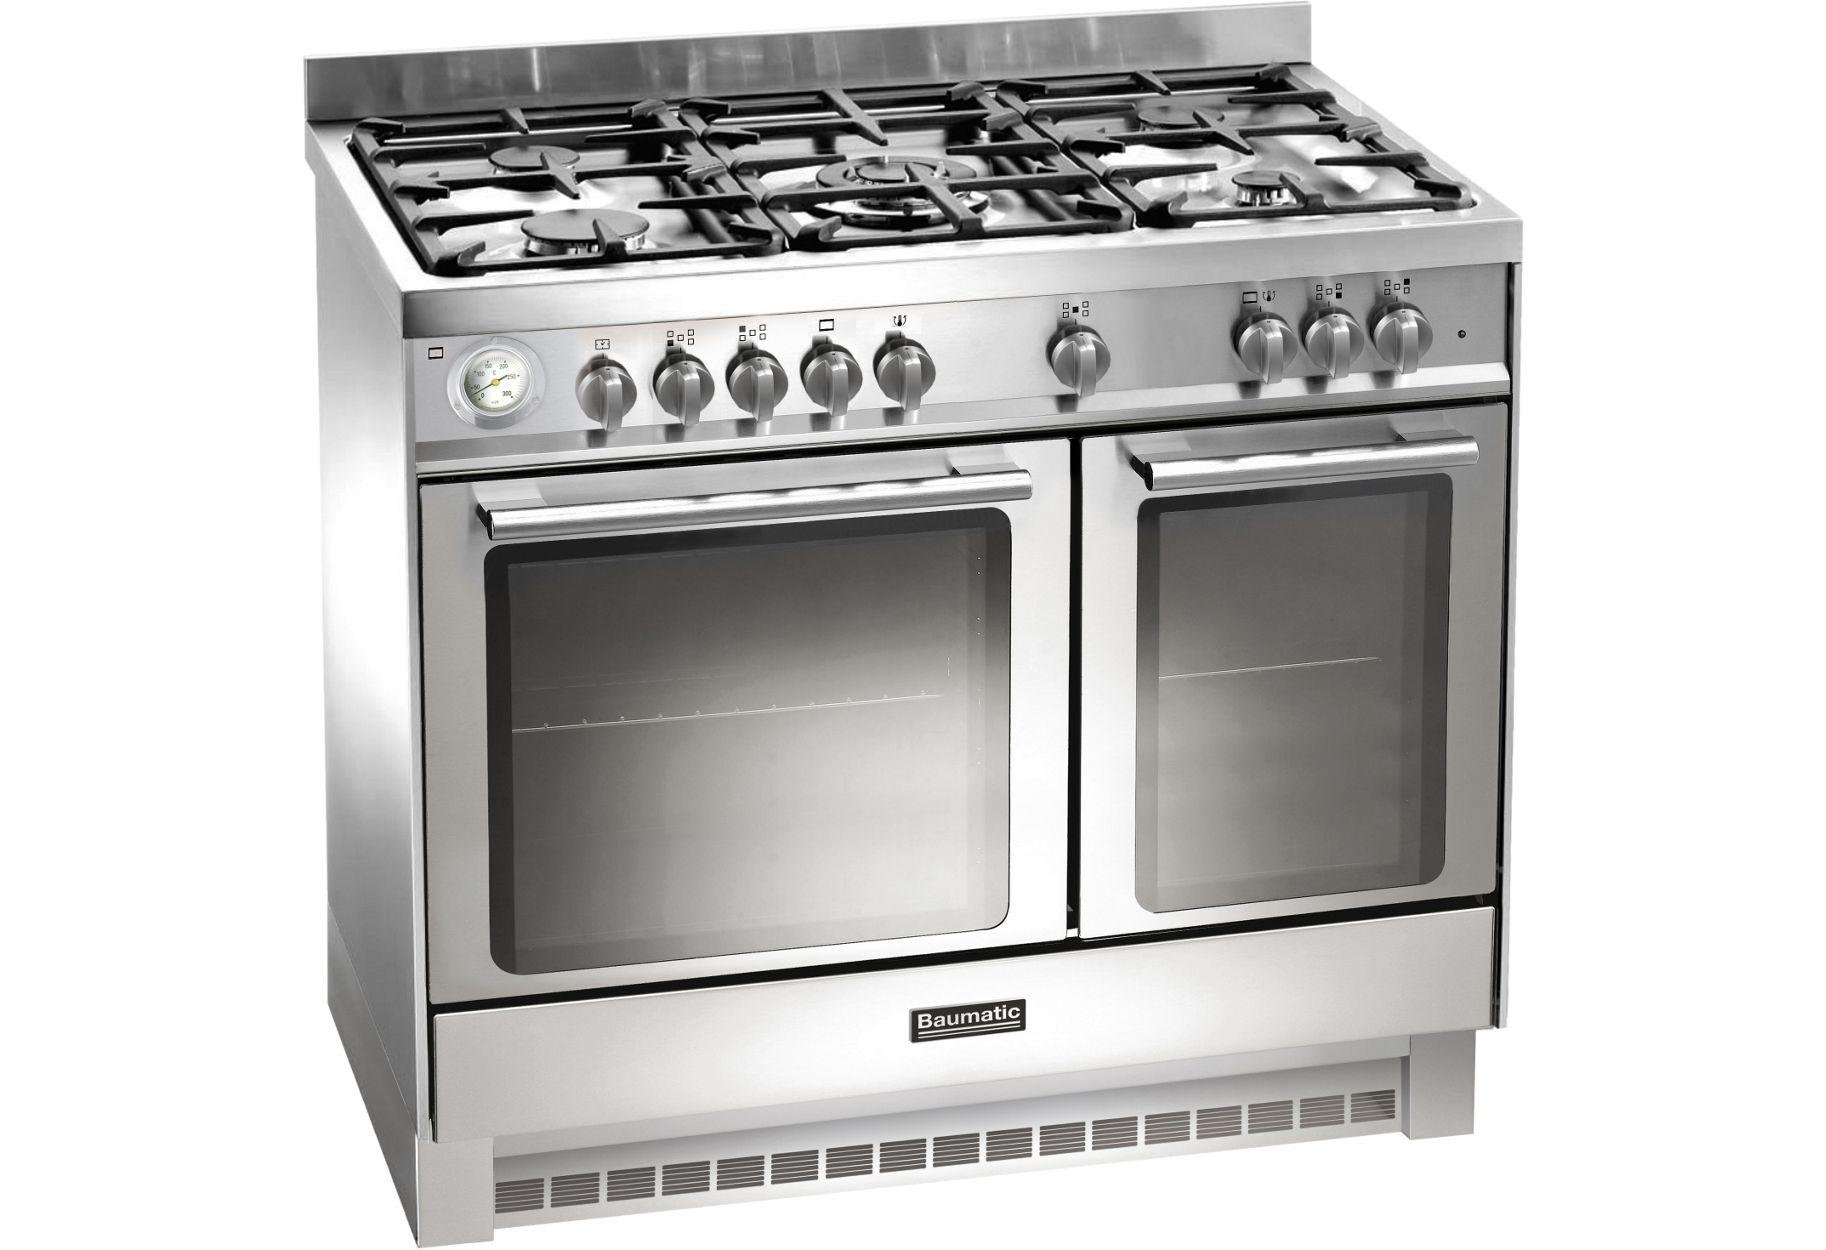 Image of Baumatic BCD925 Dual Fuel Range Cooker - Stainless Steel.